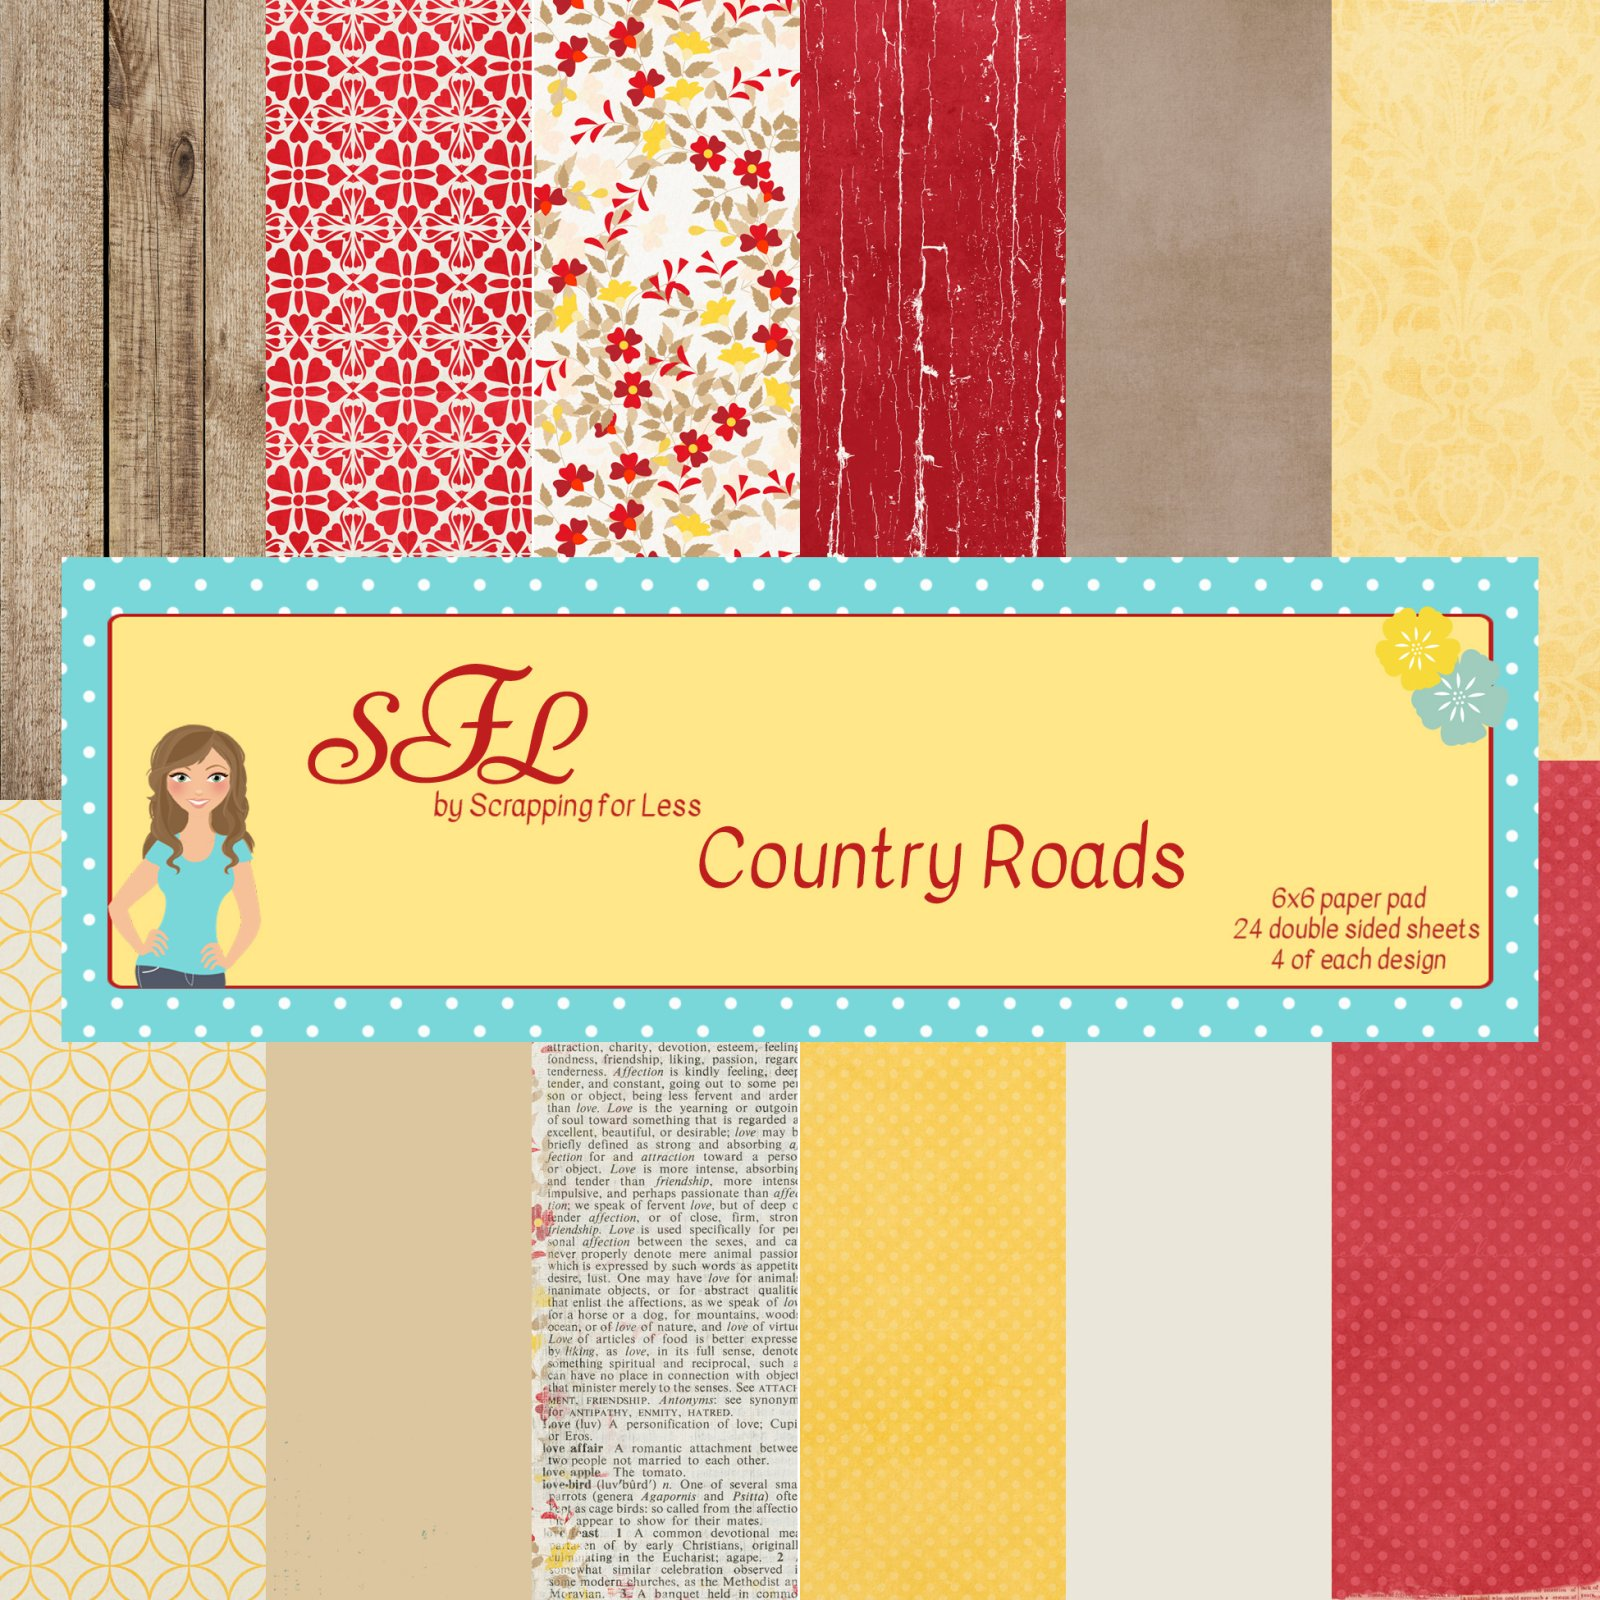 Scrapping for Less Country Roads 6x6 Paper Pad